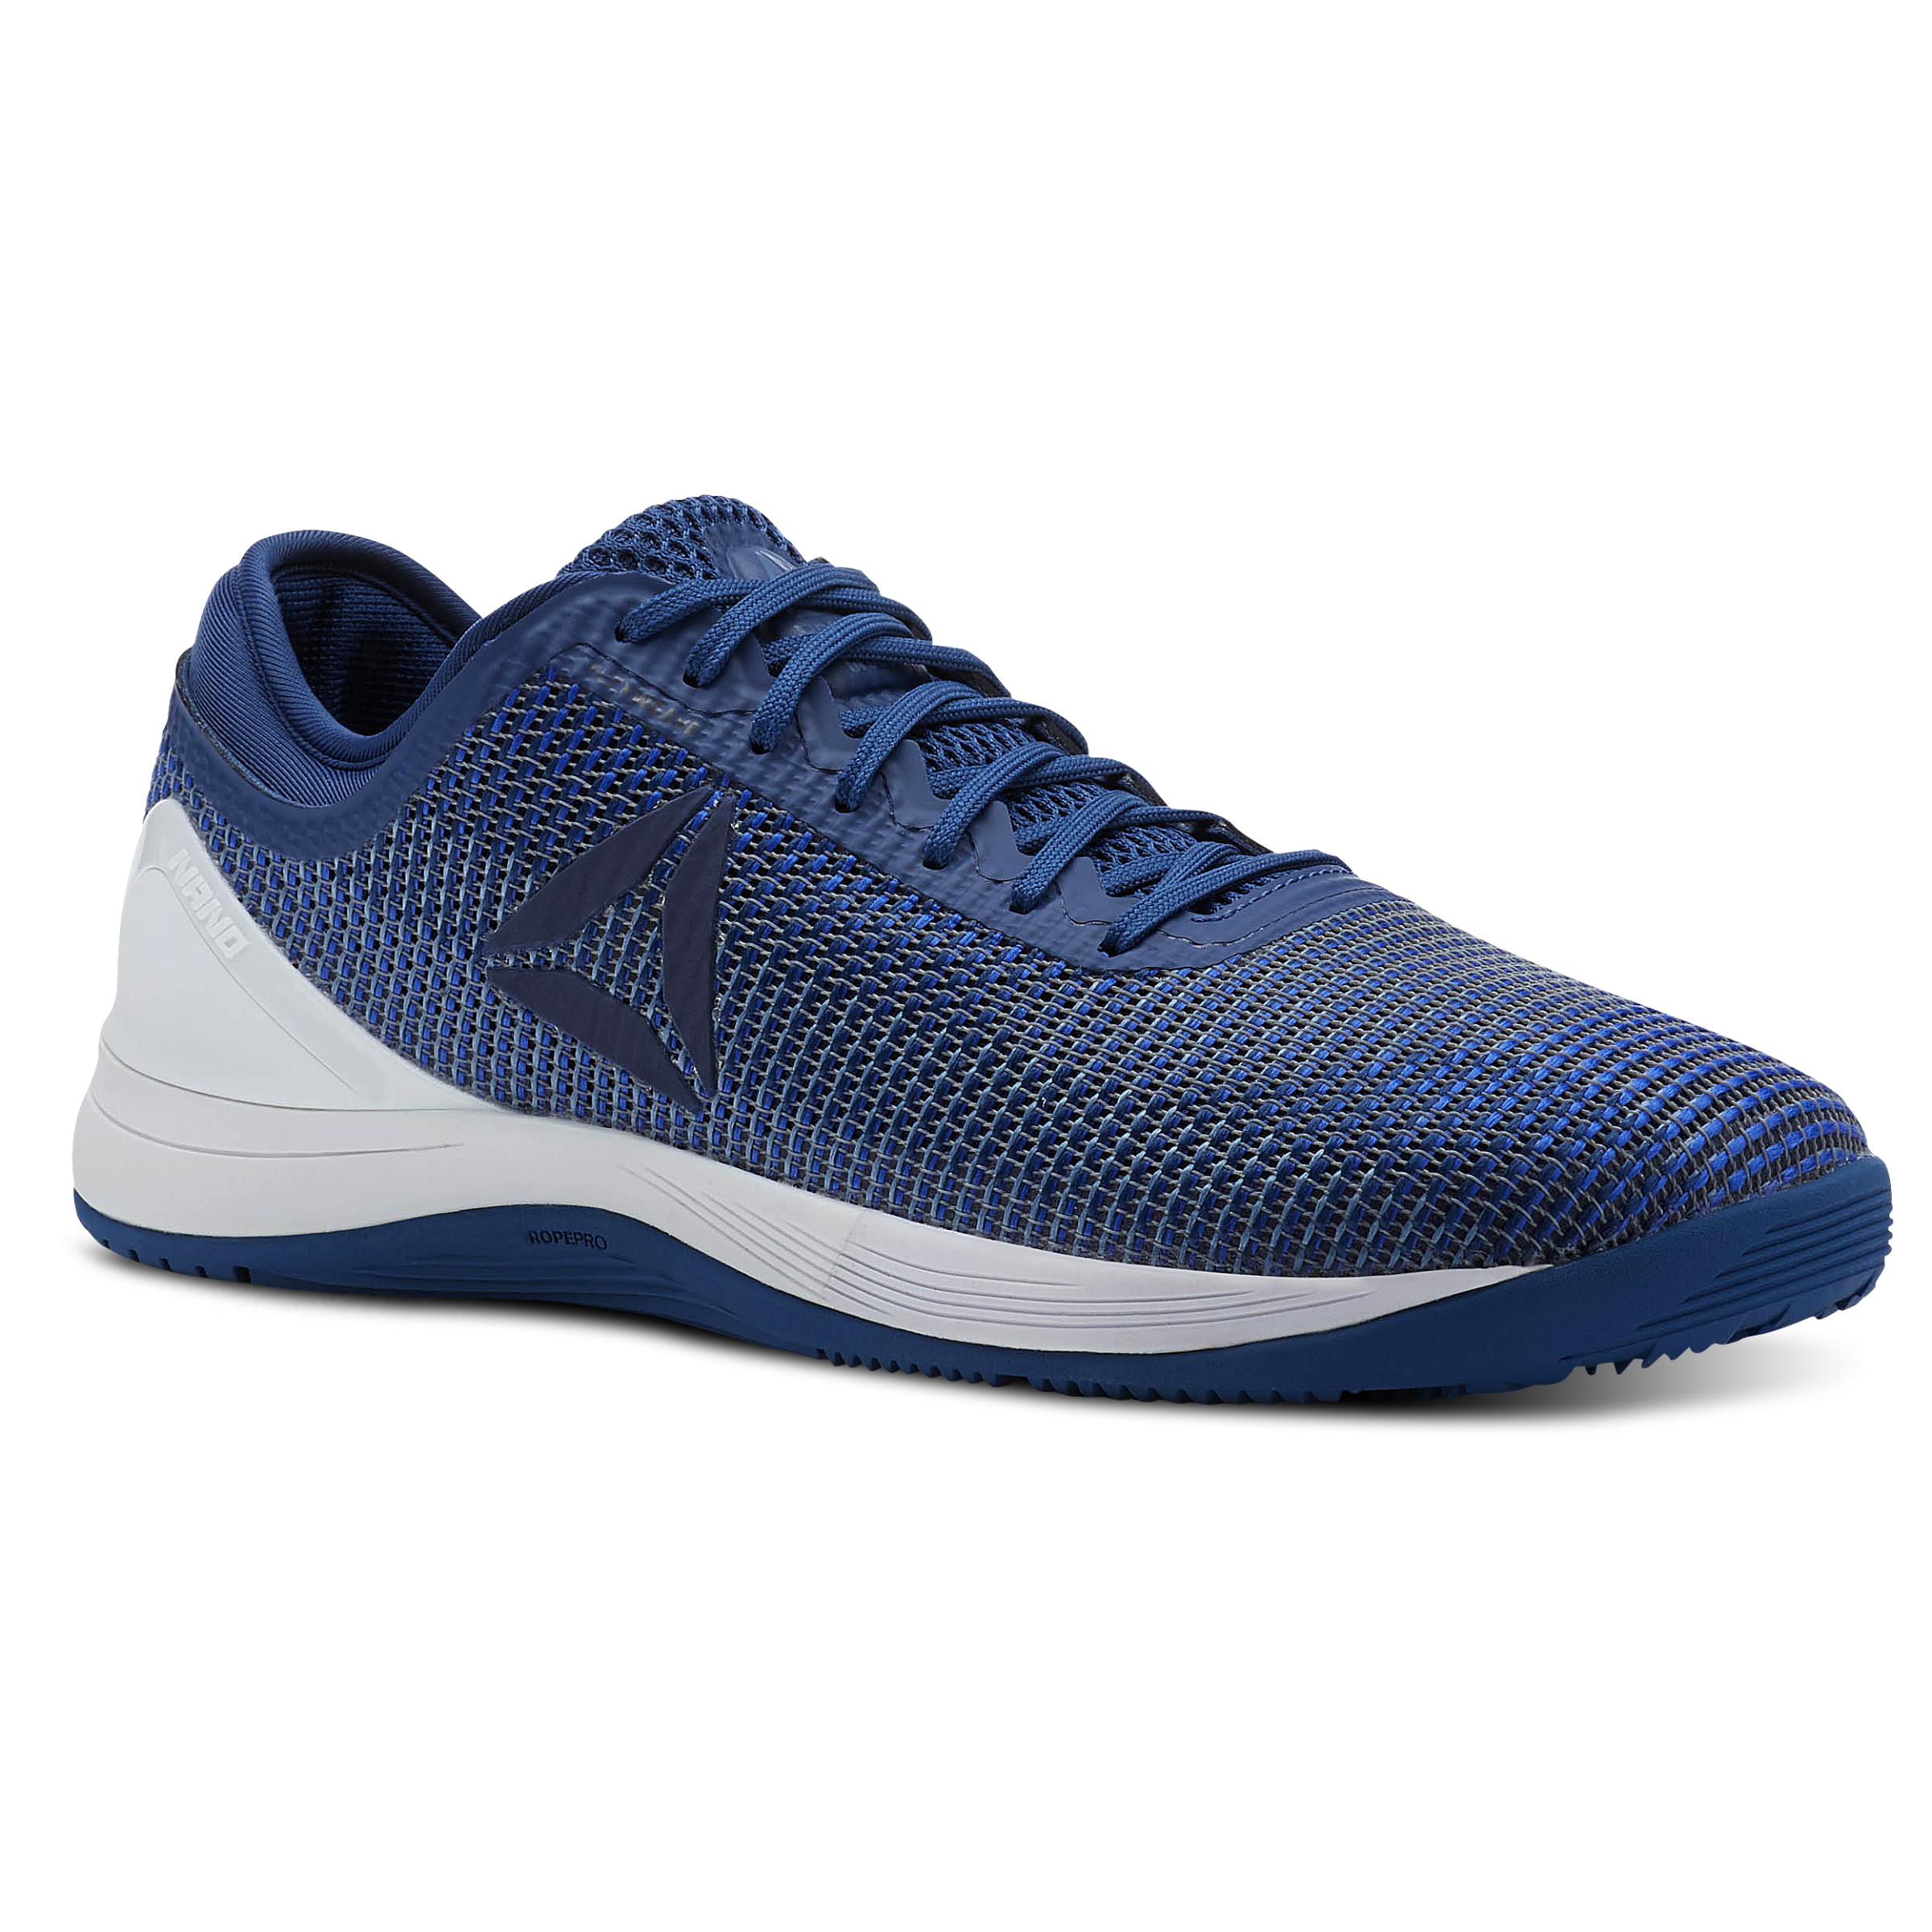 Reebok-CrossFit-Nano-8-Flexweave-Men-039-s-Shoes miniatura 19